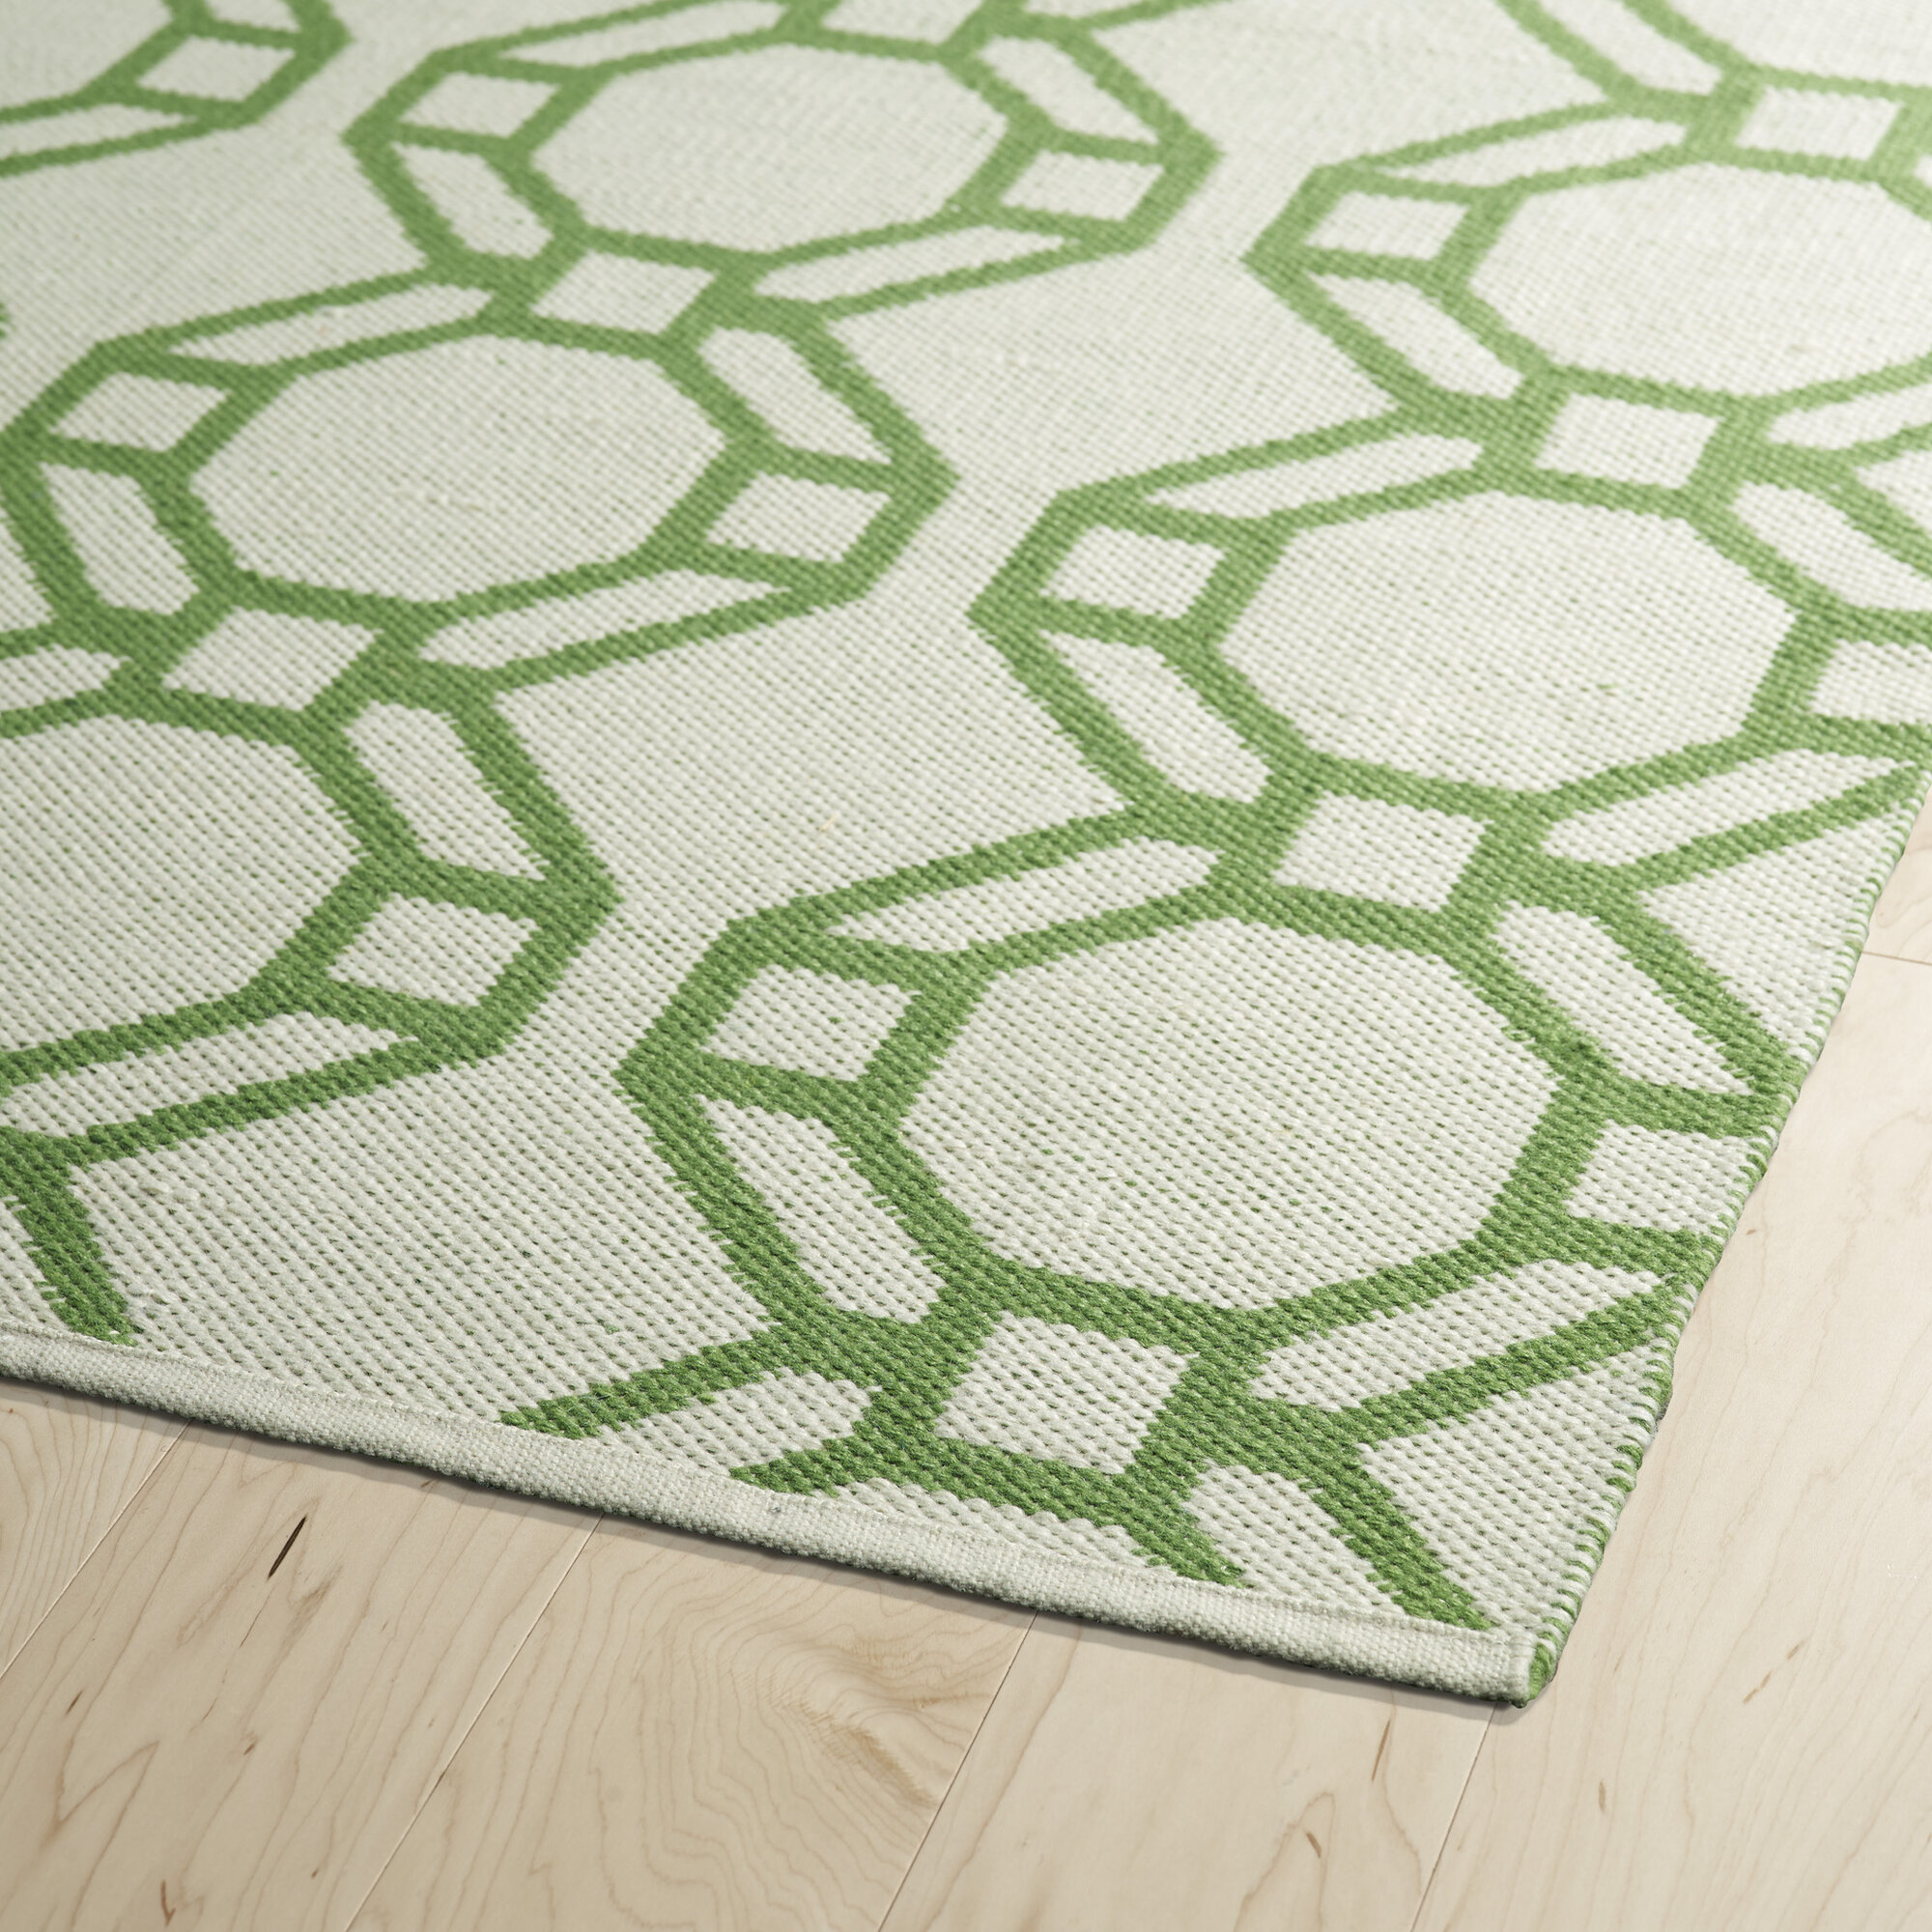 Kaleen brisa cream lime green indoor outdoor area rug ebay for Indoor outdoor carpet green